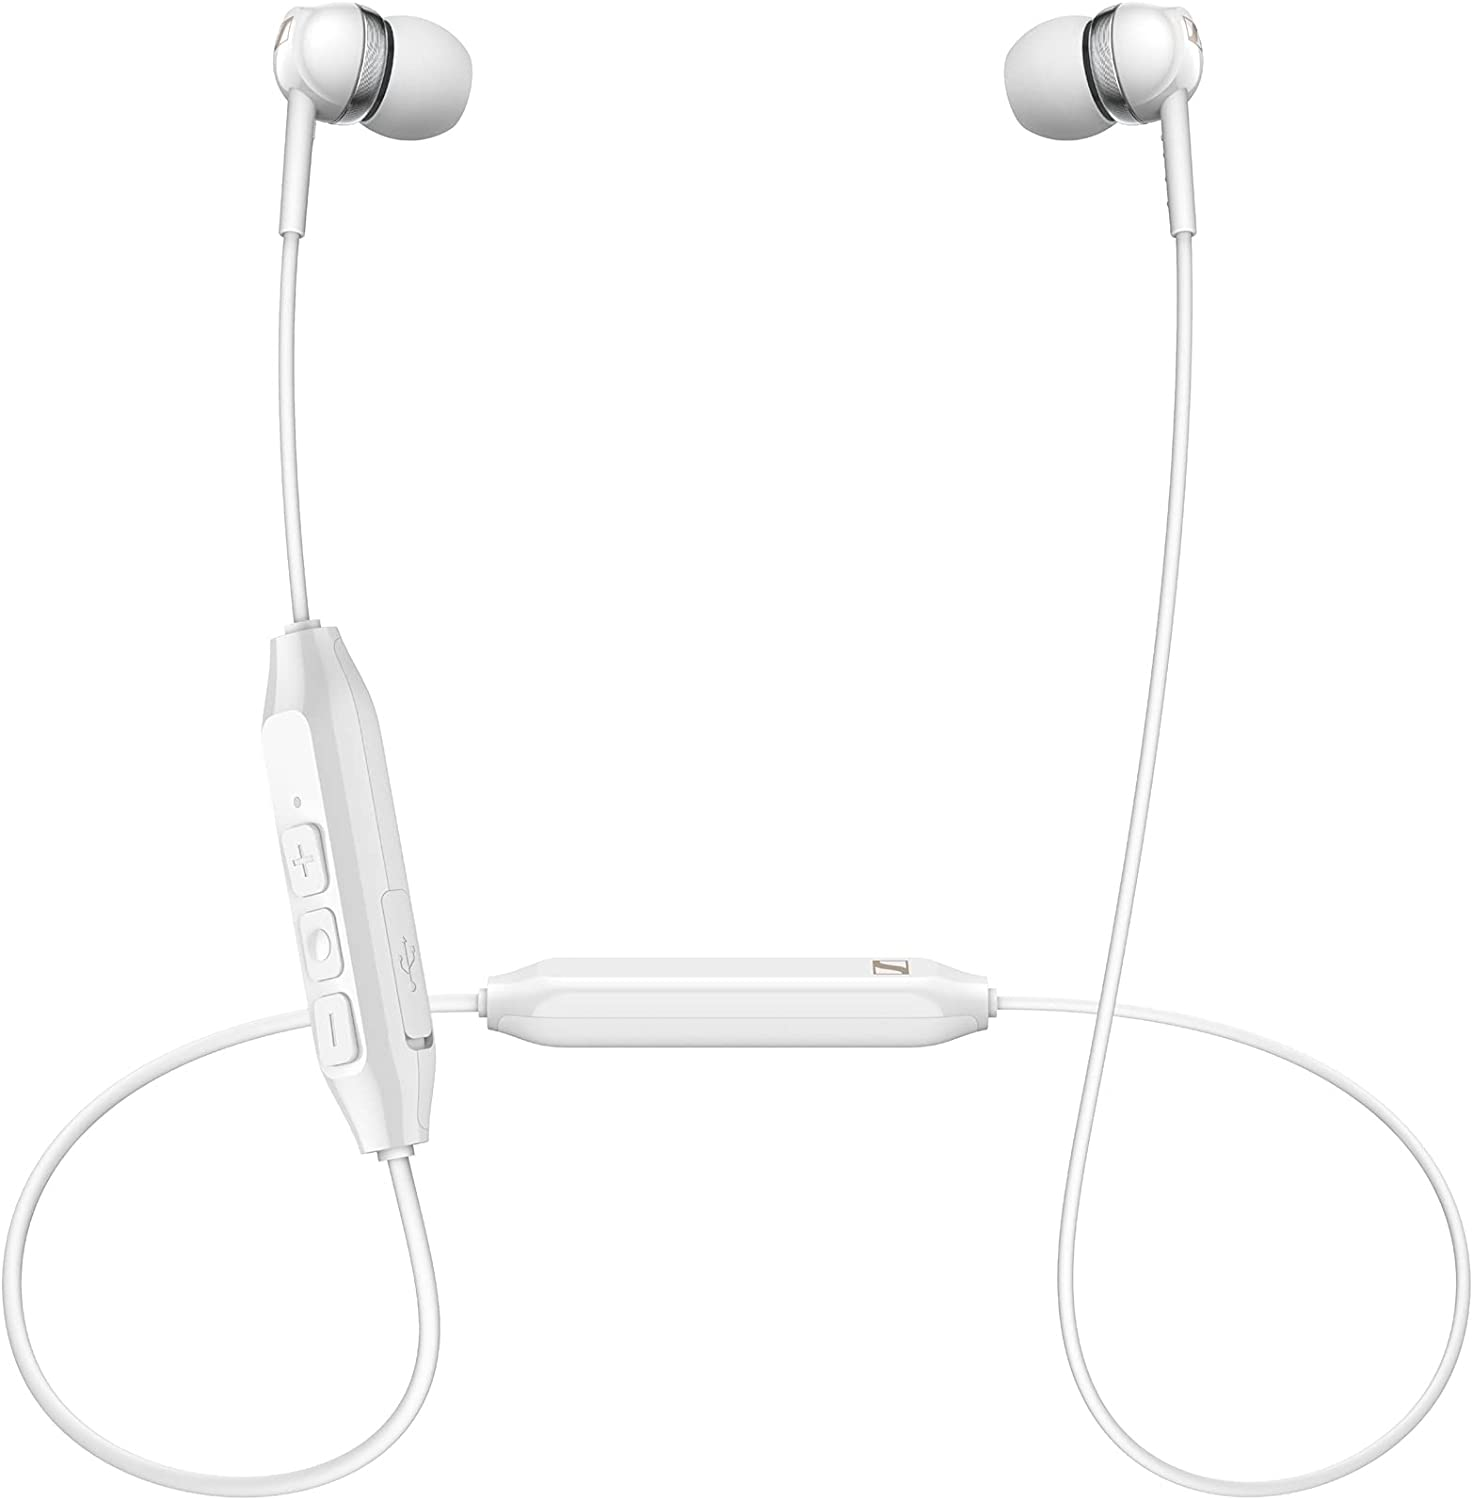 Sennheiser CX 150BT Bluetooth 5.0 Wireless Headphone - 10-Hour Battery Life, USB-C Fast Charging, Two Device Connectivity - White (CX 150BT White)